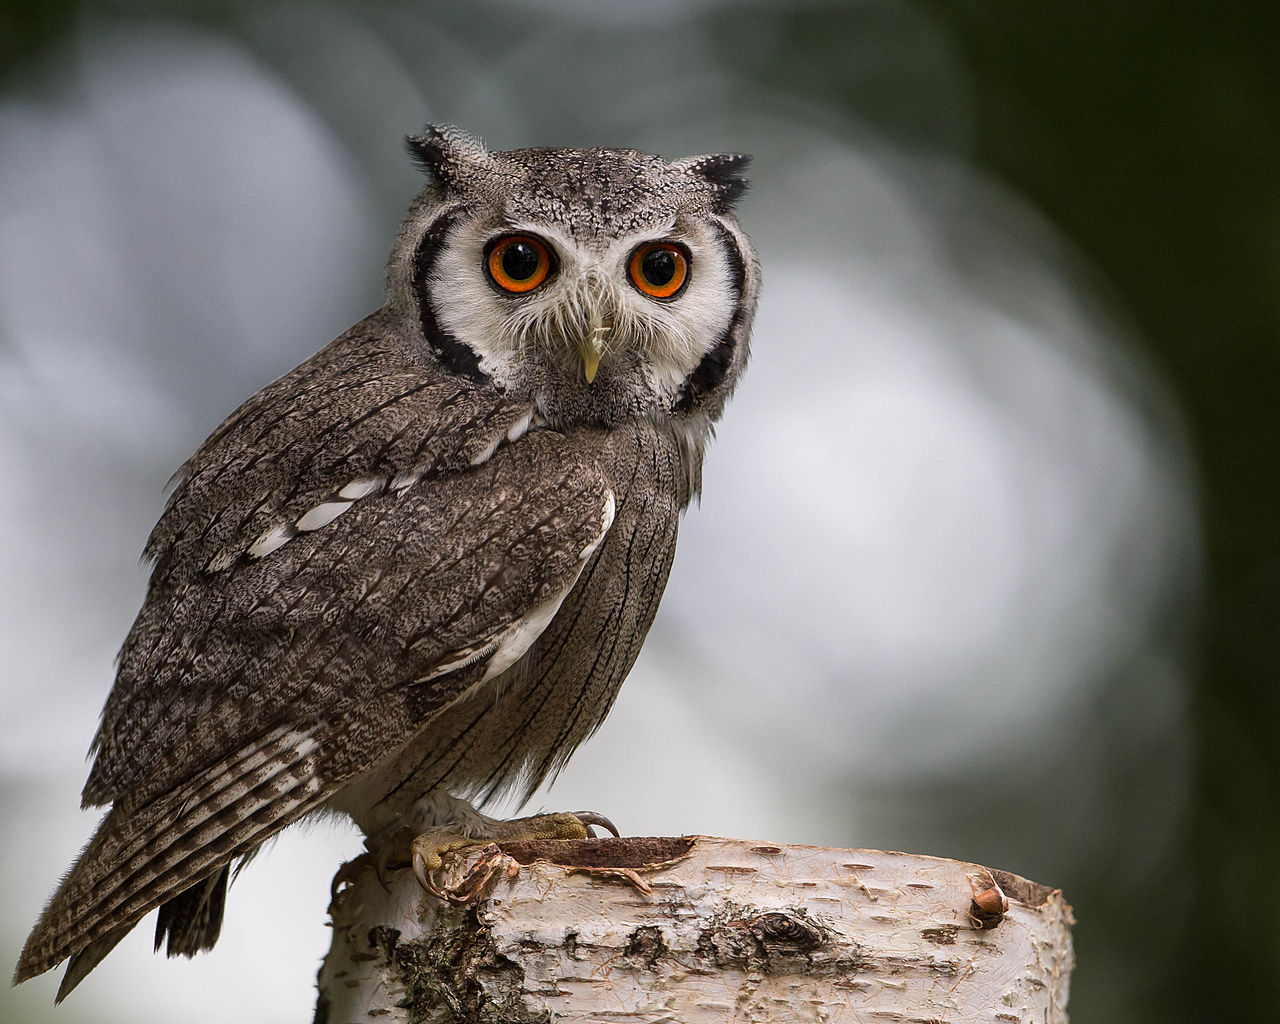 Southern White Faced Scops Owl in Botswana